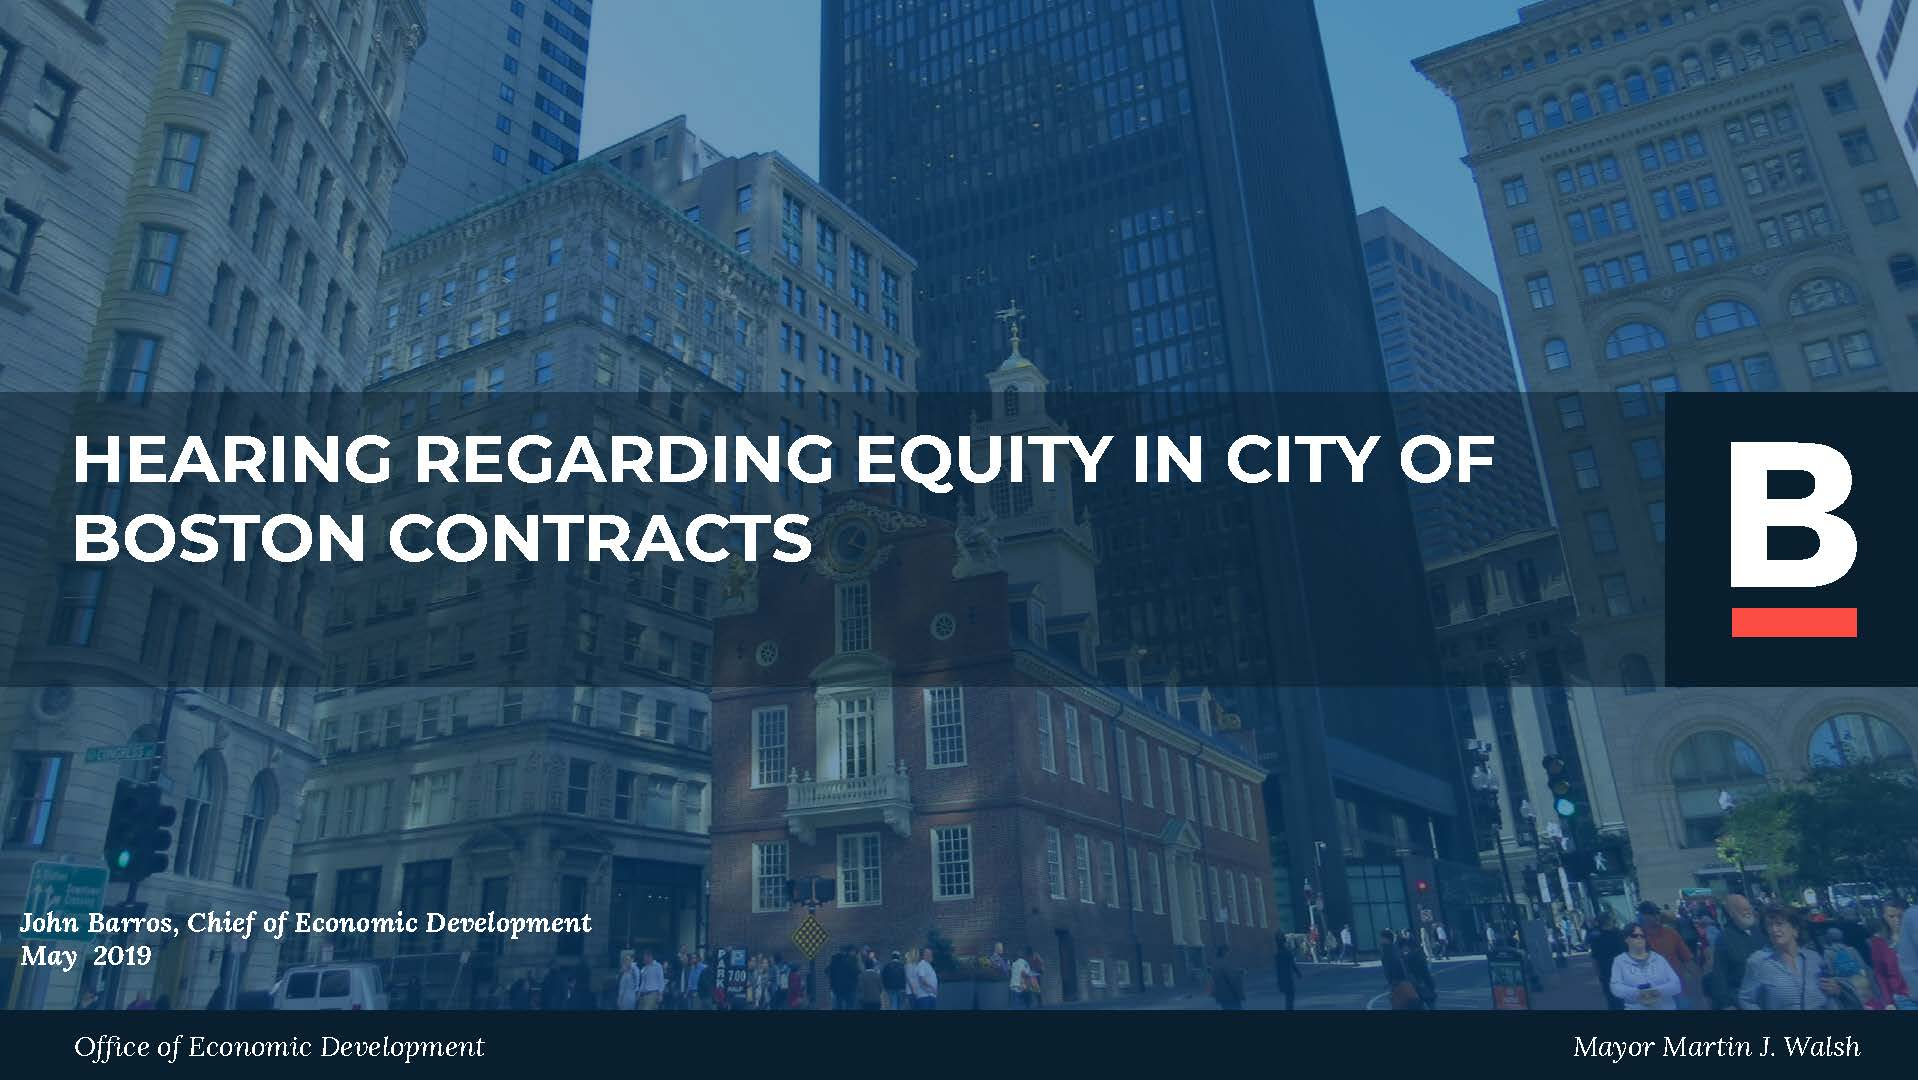 5.2_City Council Hearing_Equity in City of Boston Contracts_Page_01.jpg